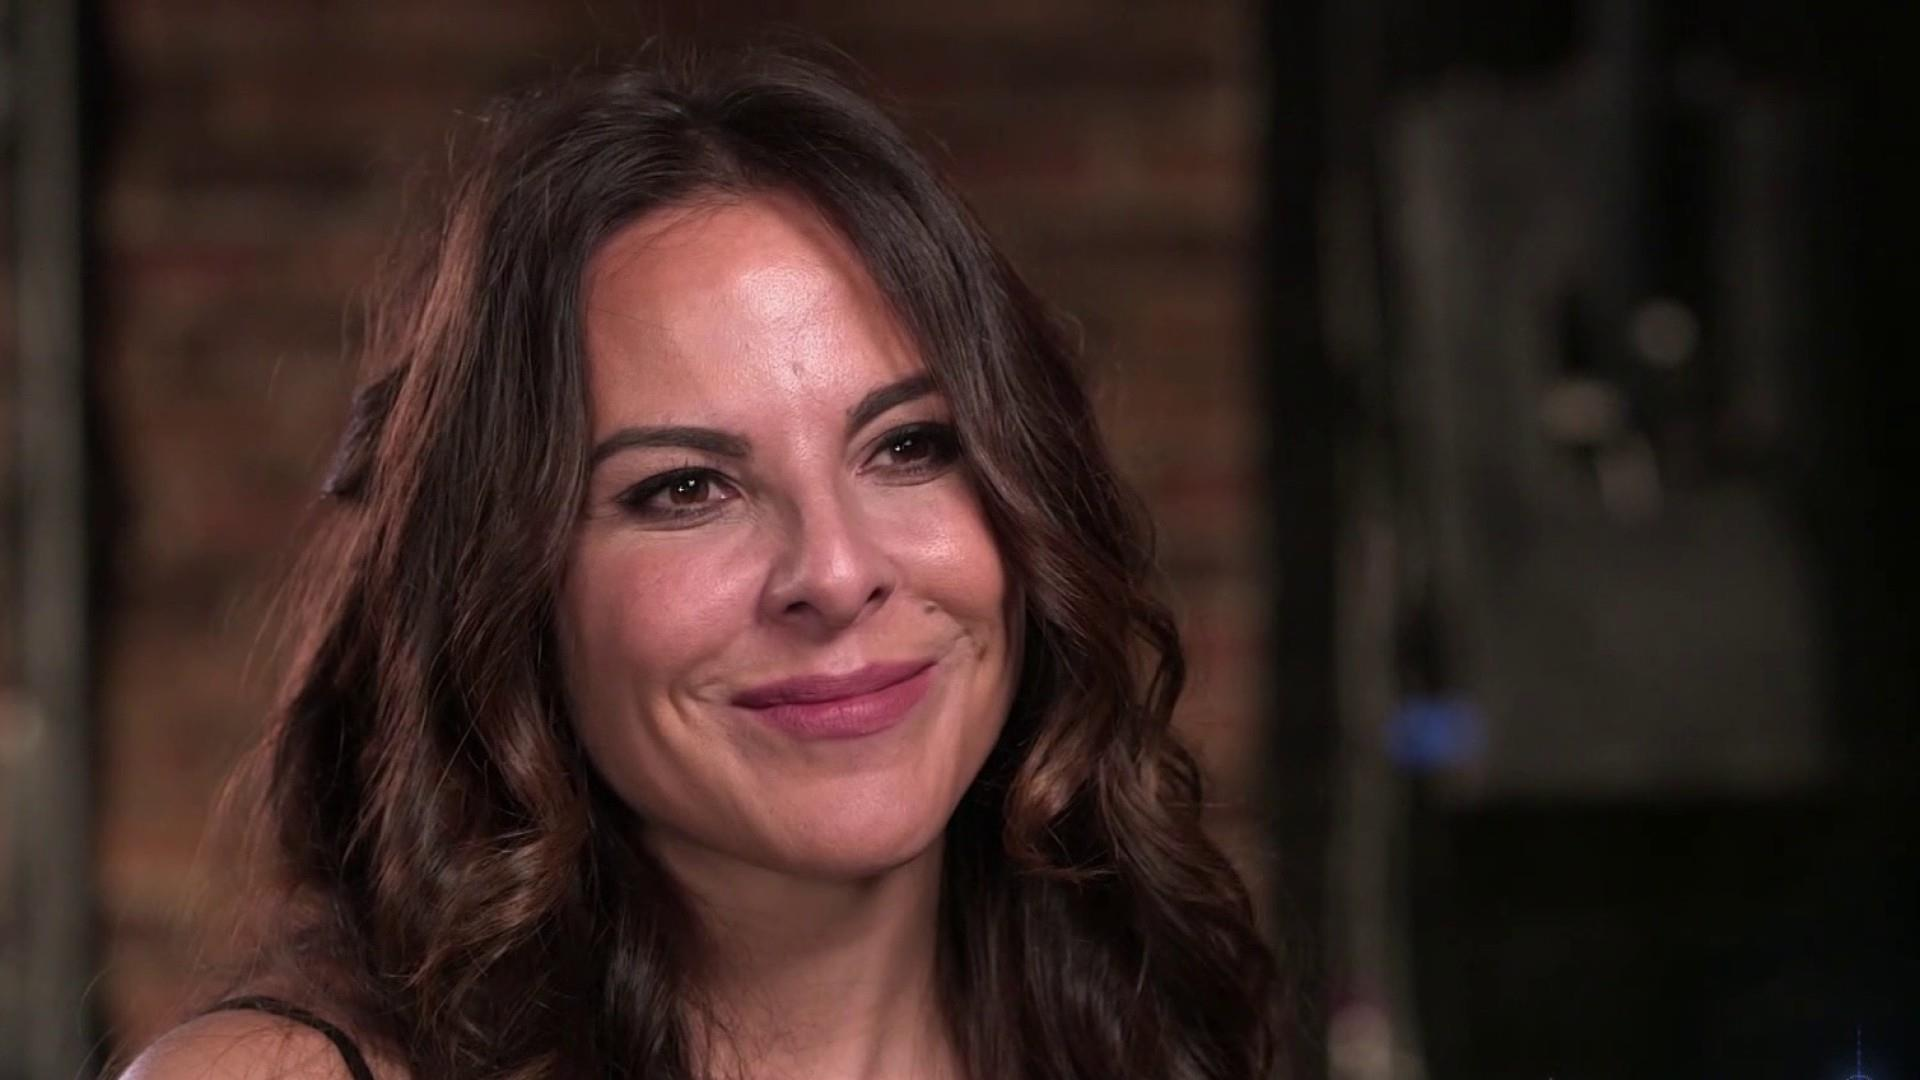 Actress Kate del Castillo talks her passion project and El Chapo ordeal